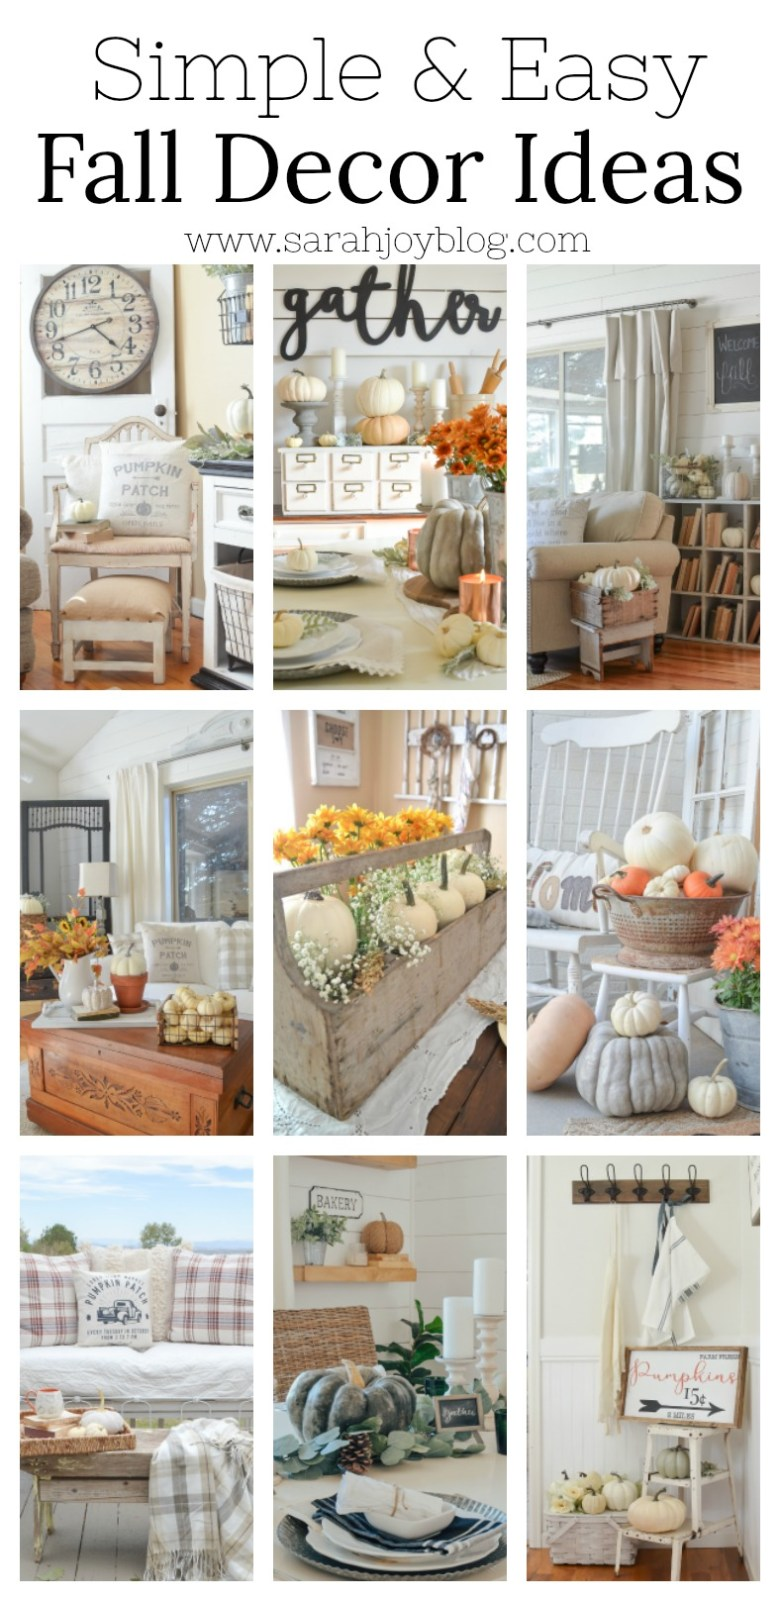 Simple and easy fall decorating ideas. Farmhouse style fall decor inspiration for every room in your home.